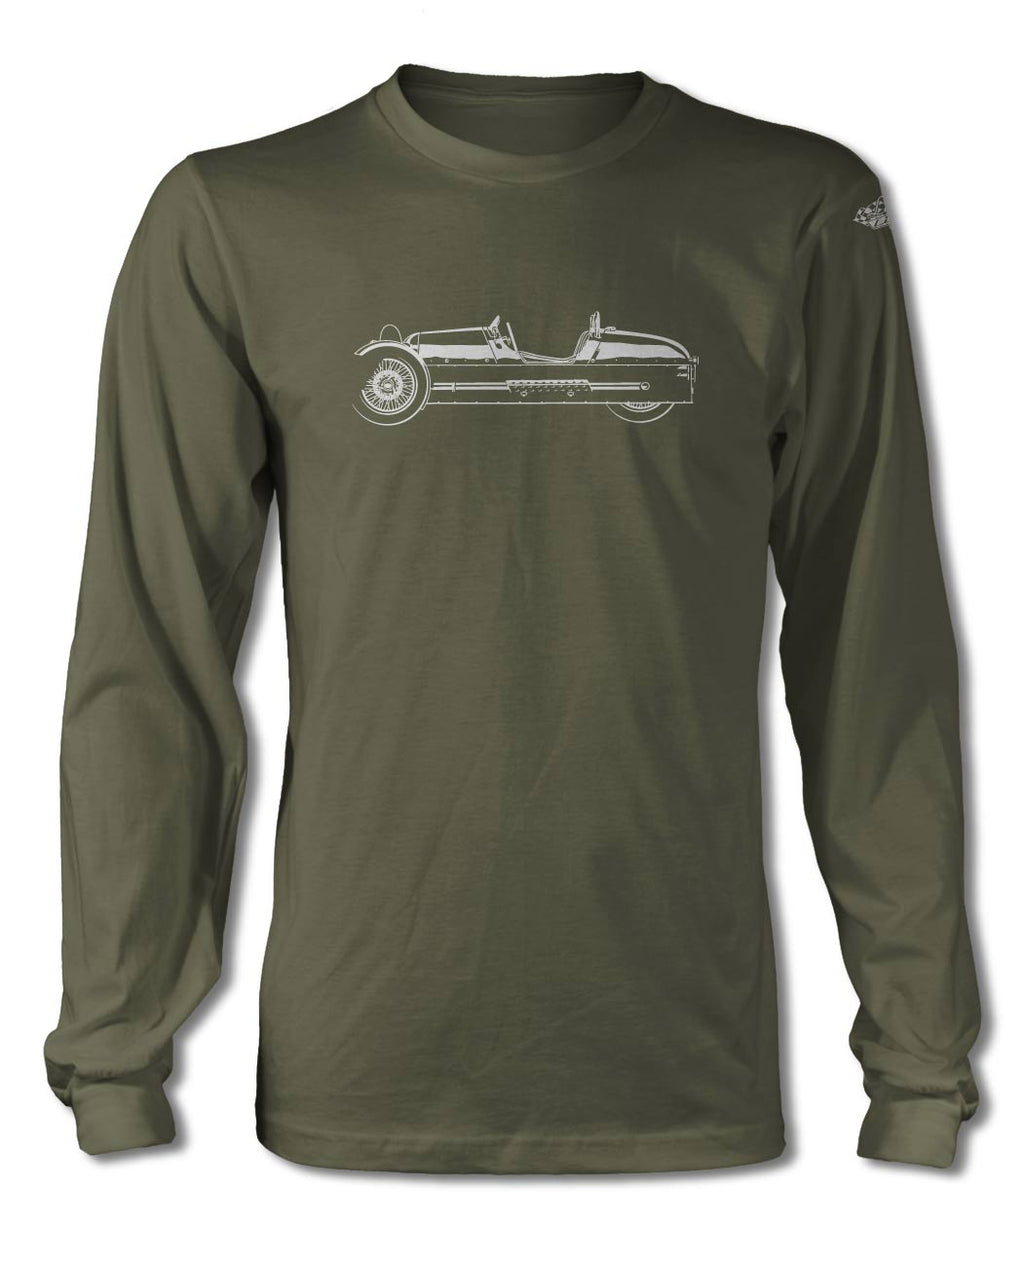 Morgan Three-Wheeler Aero Super Sport T-Shirt - Long Sleeves - Side View